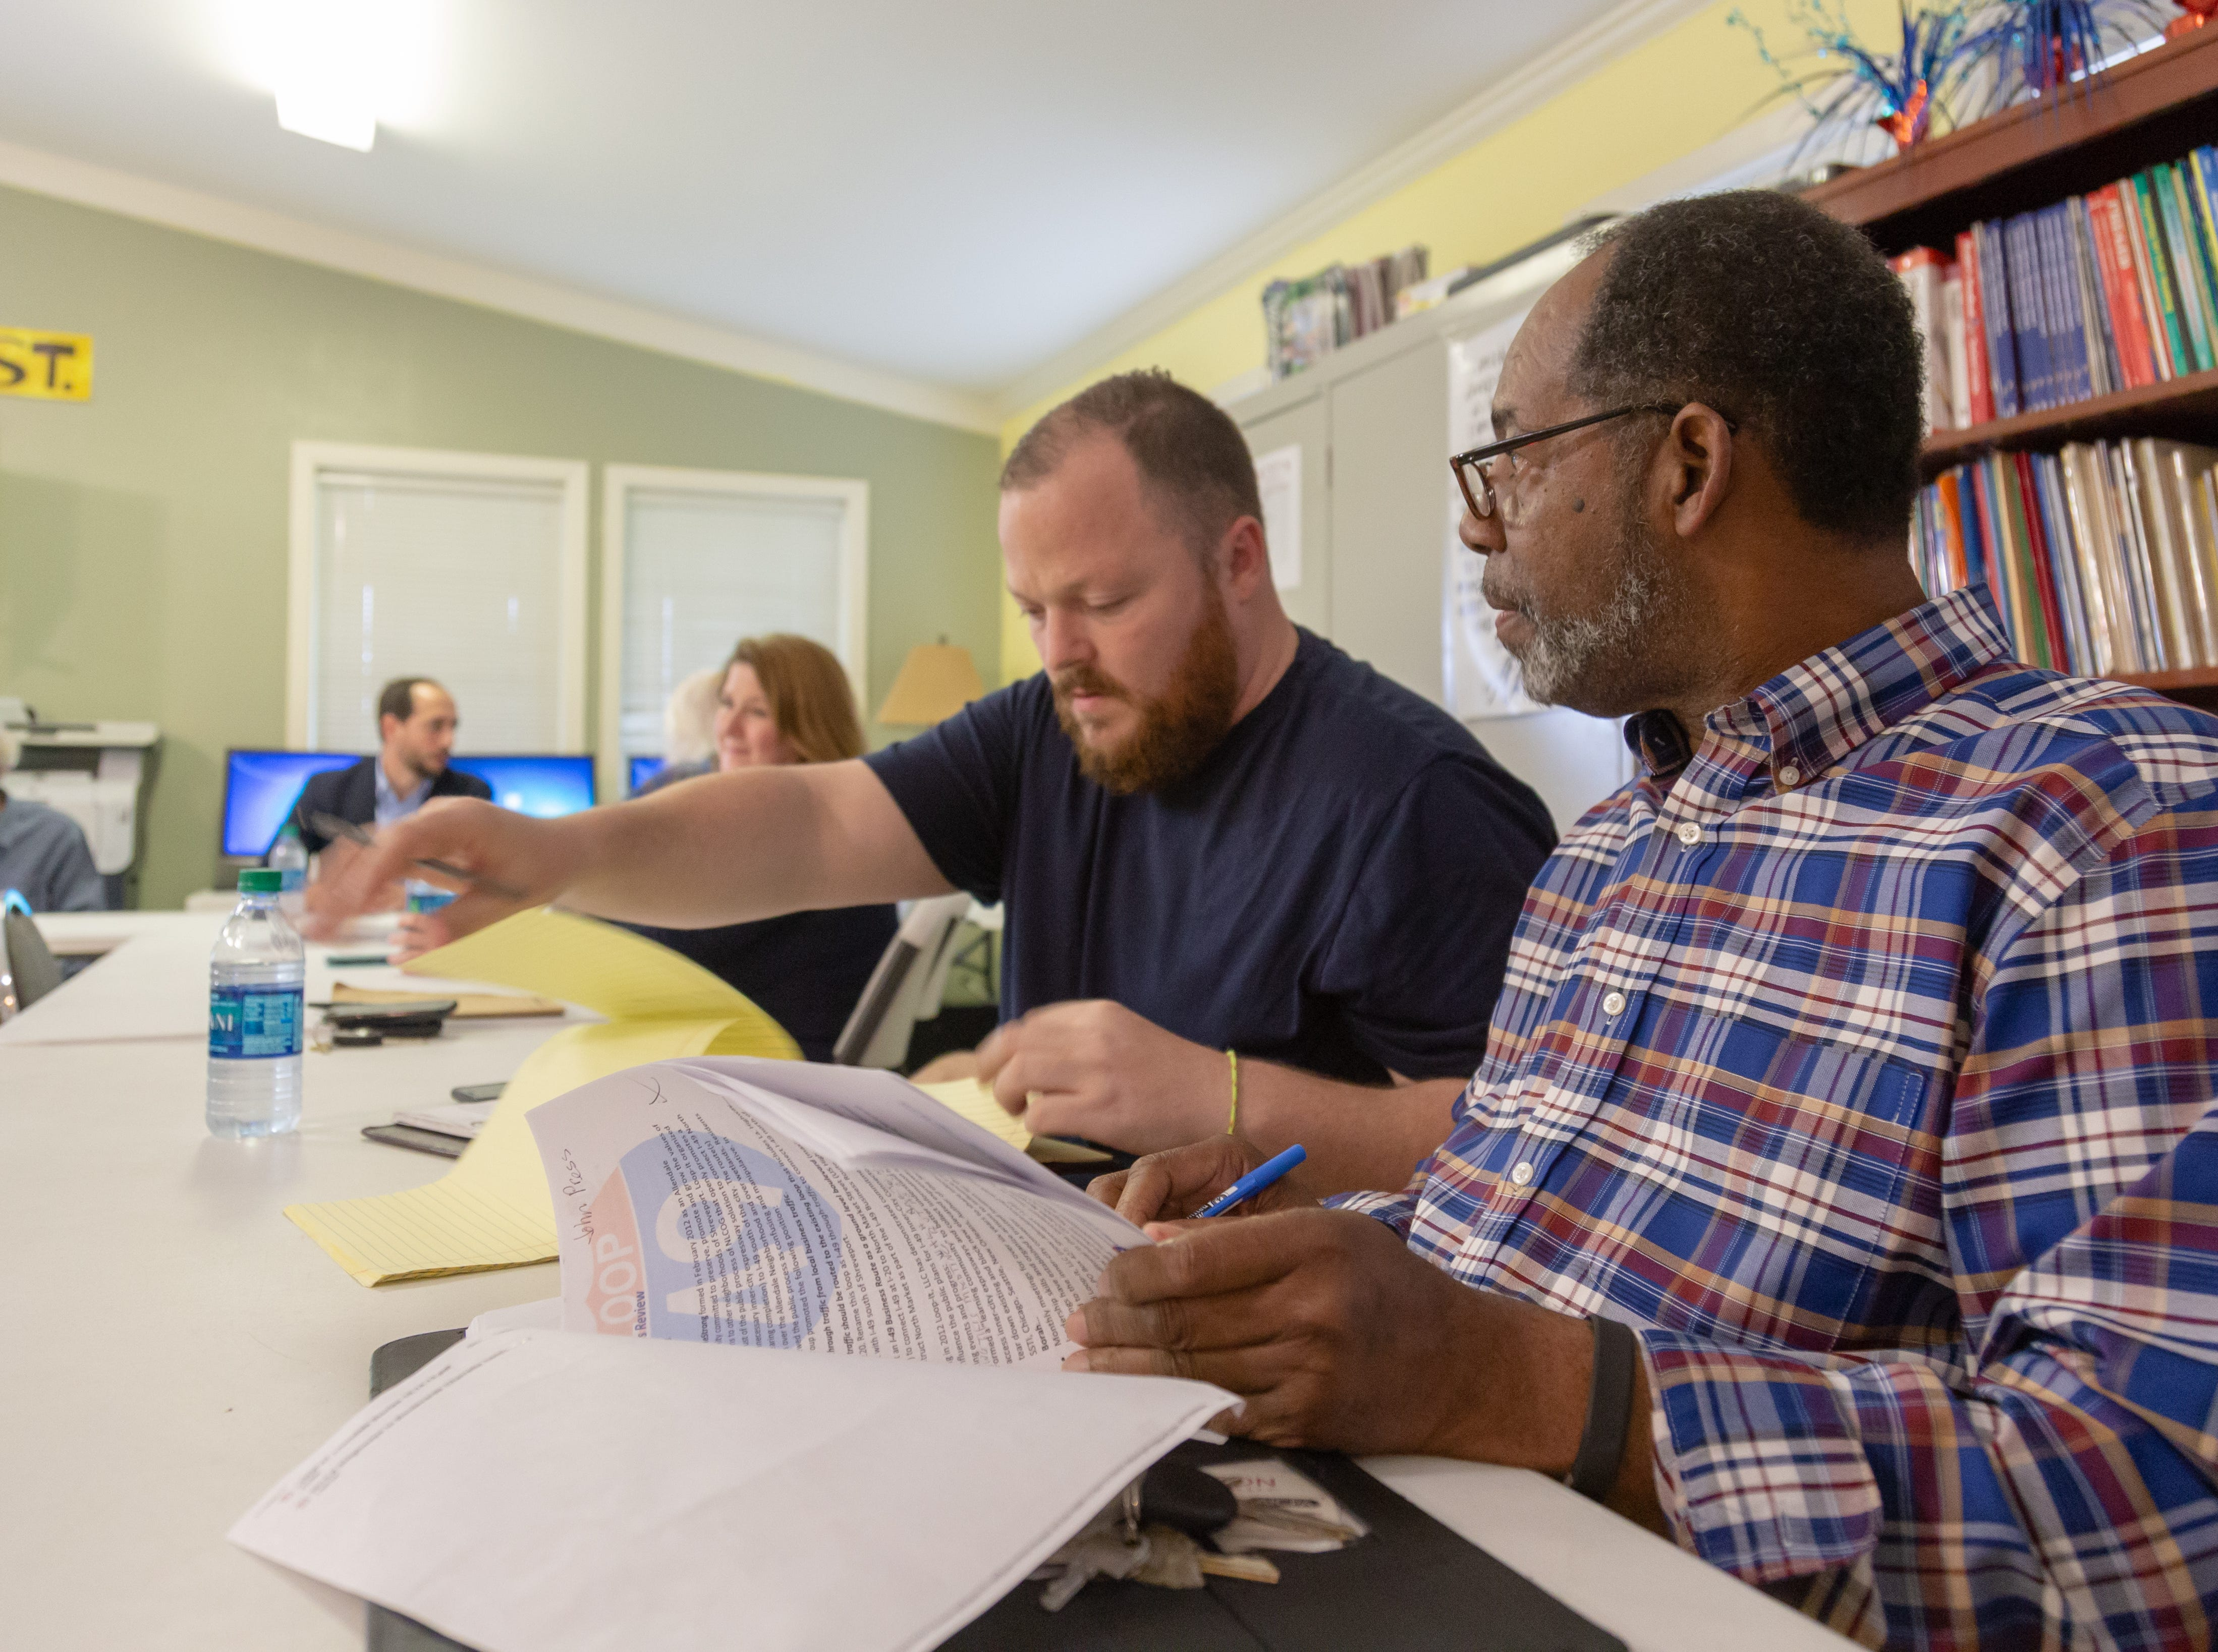 """""""Allendale Strong,"""" a group of activists that have protested a highway expansion plan for years, met with lawyers and the Mayor Perkins to discuss the project which is in last stages of decision-making process Thursday evening April 11, 2019."""